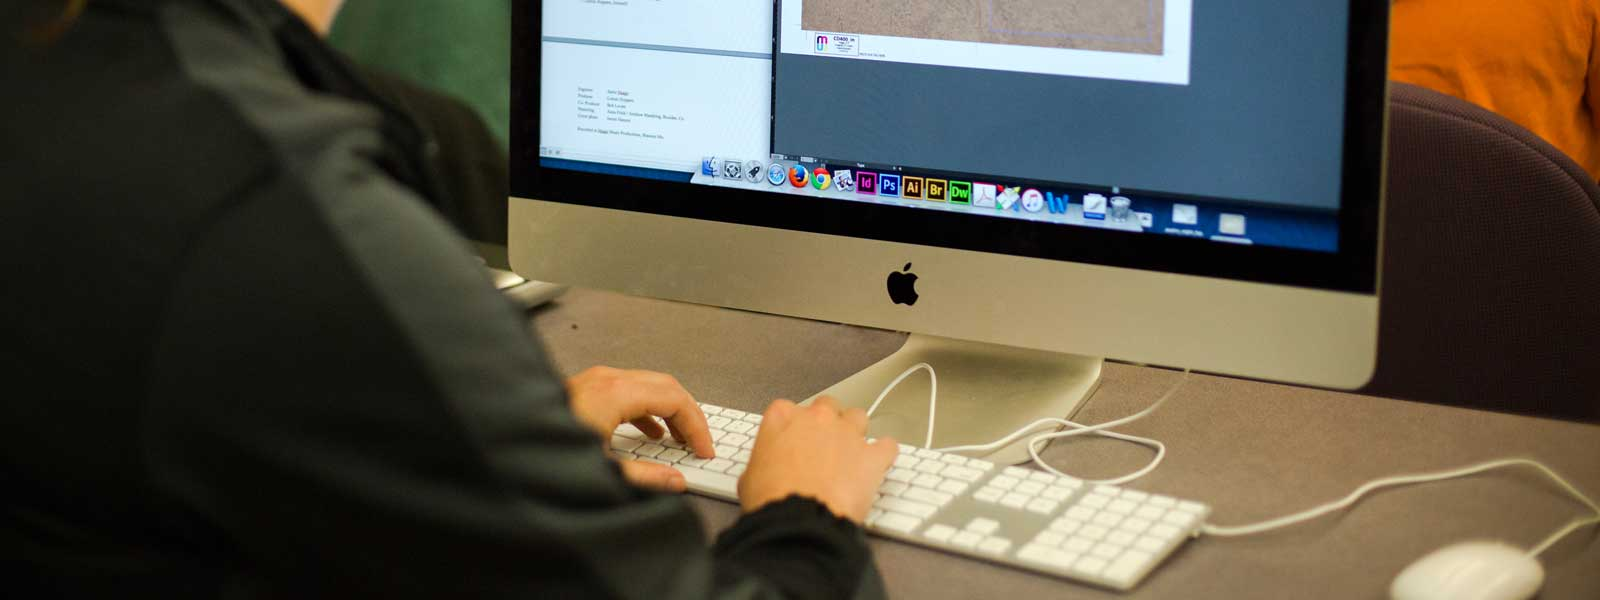 students working on graphic design projects on large Mac computers